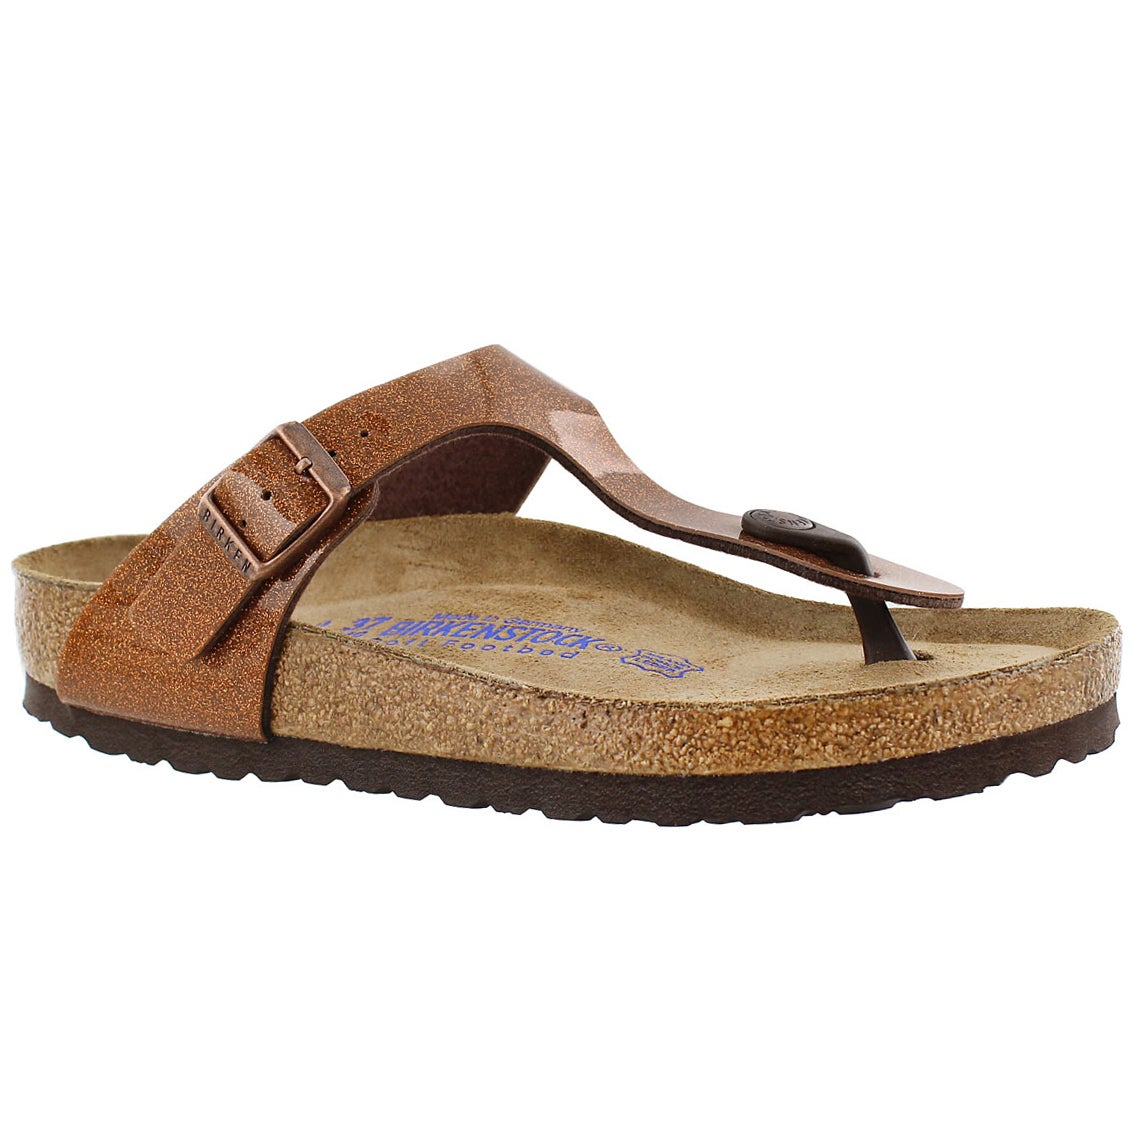 Women's GIZEH soft footbed magic galaxy sandals